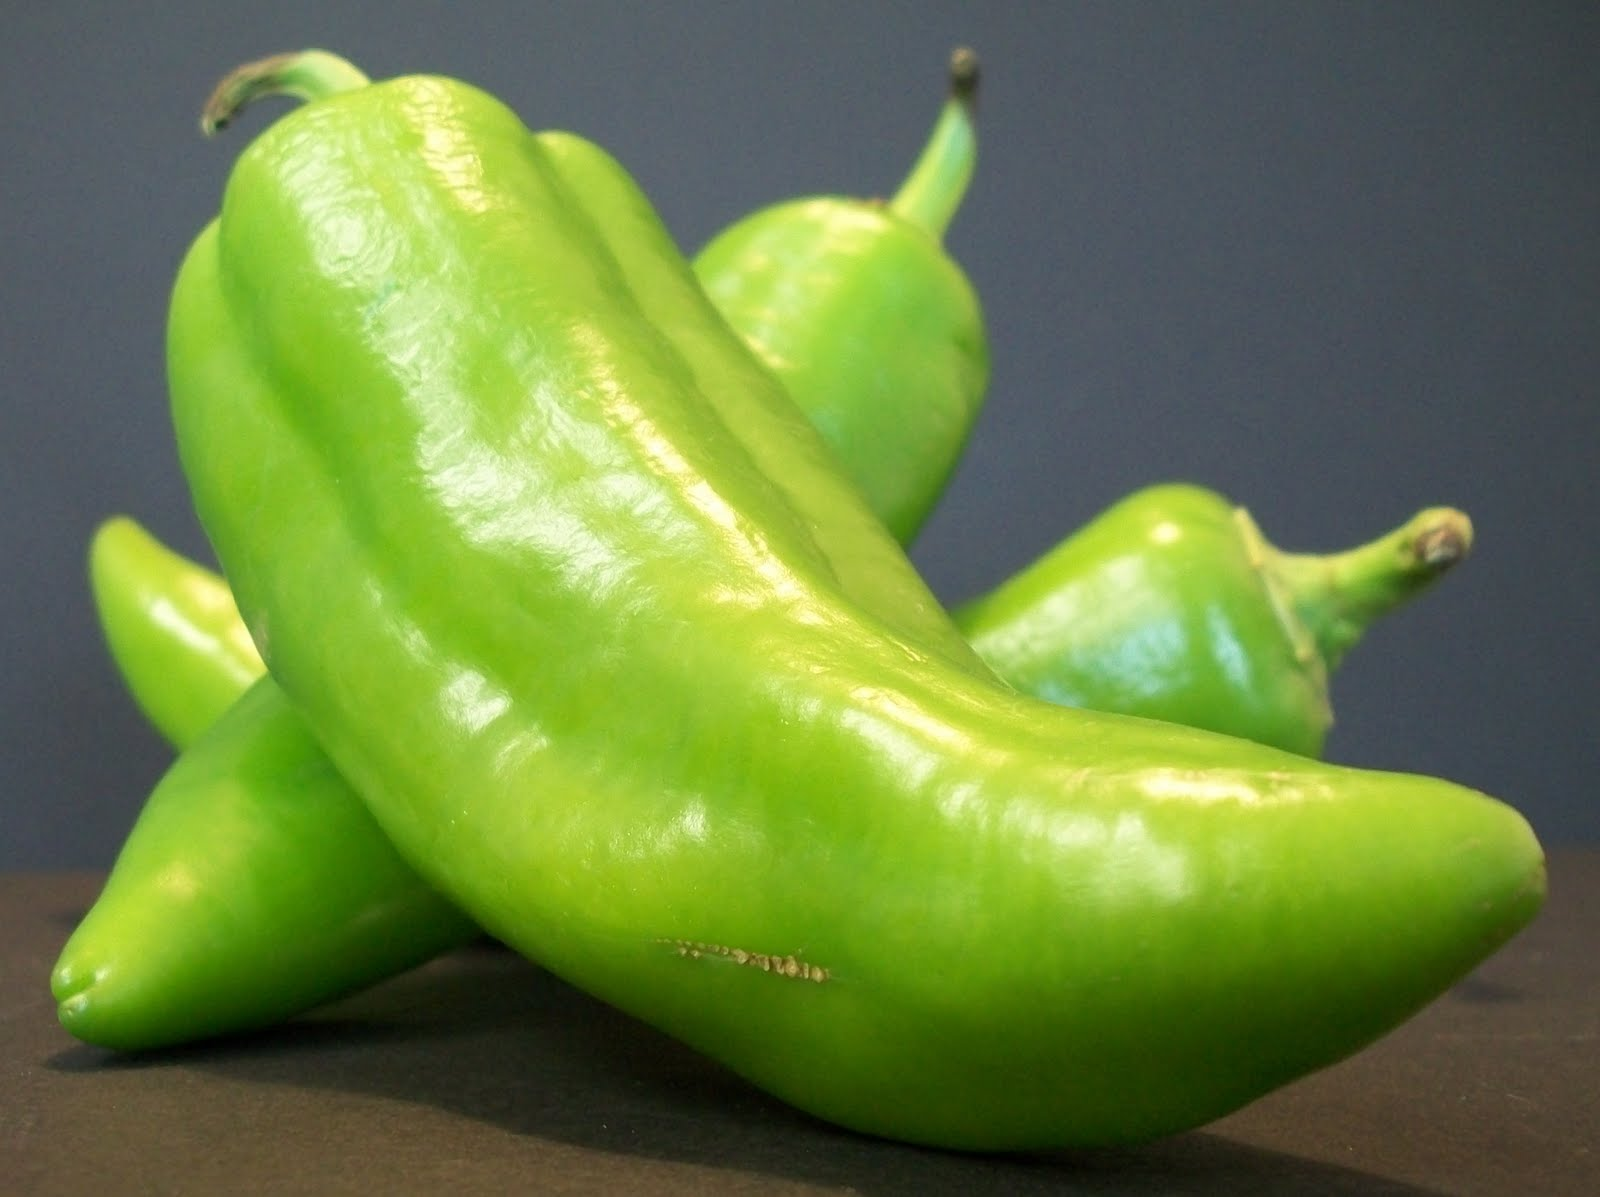 My Kind of Cooking: Tip: Chile Peppers